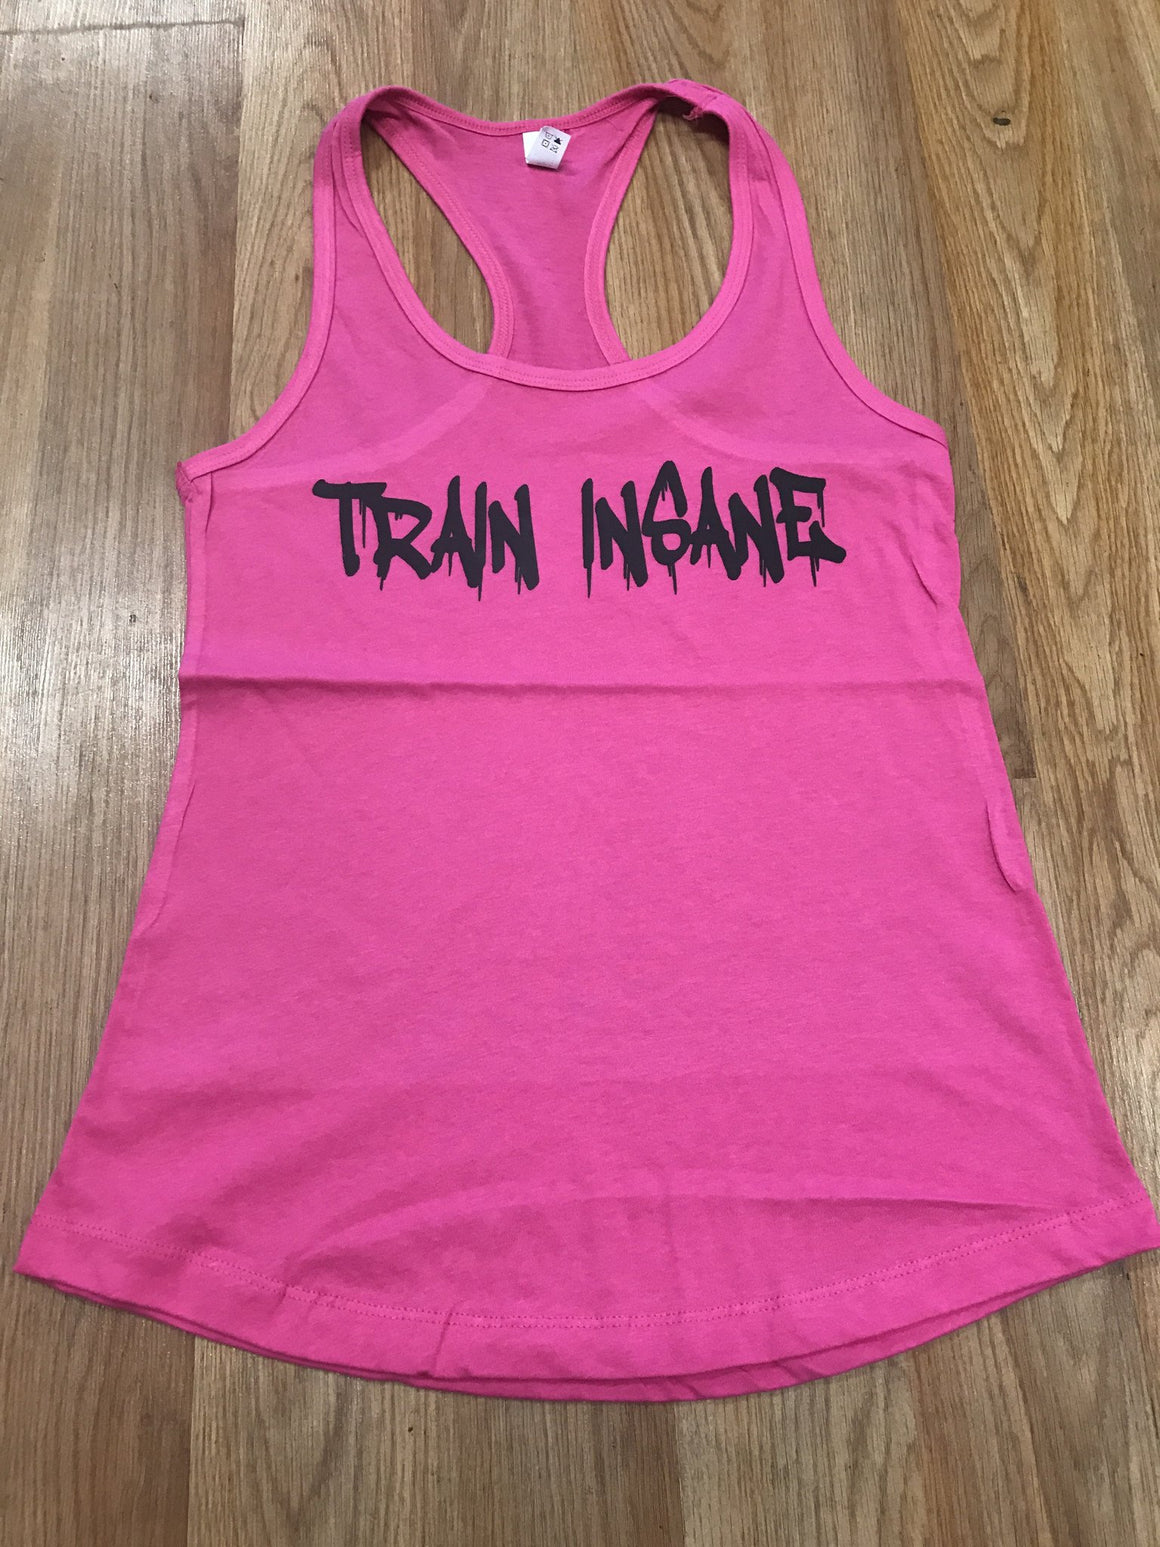 Train Insane Women's Workout Racerback Tank- The Sox Box